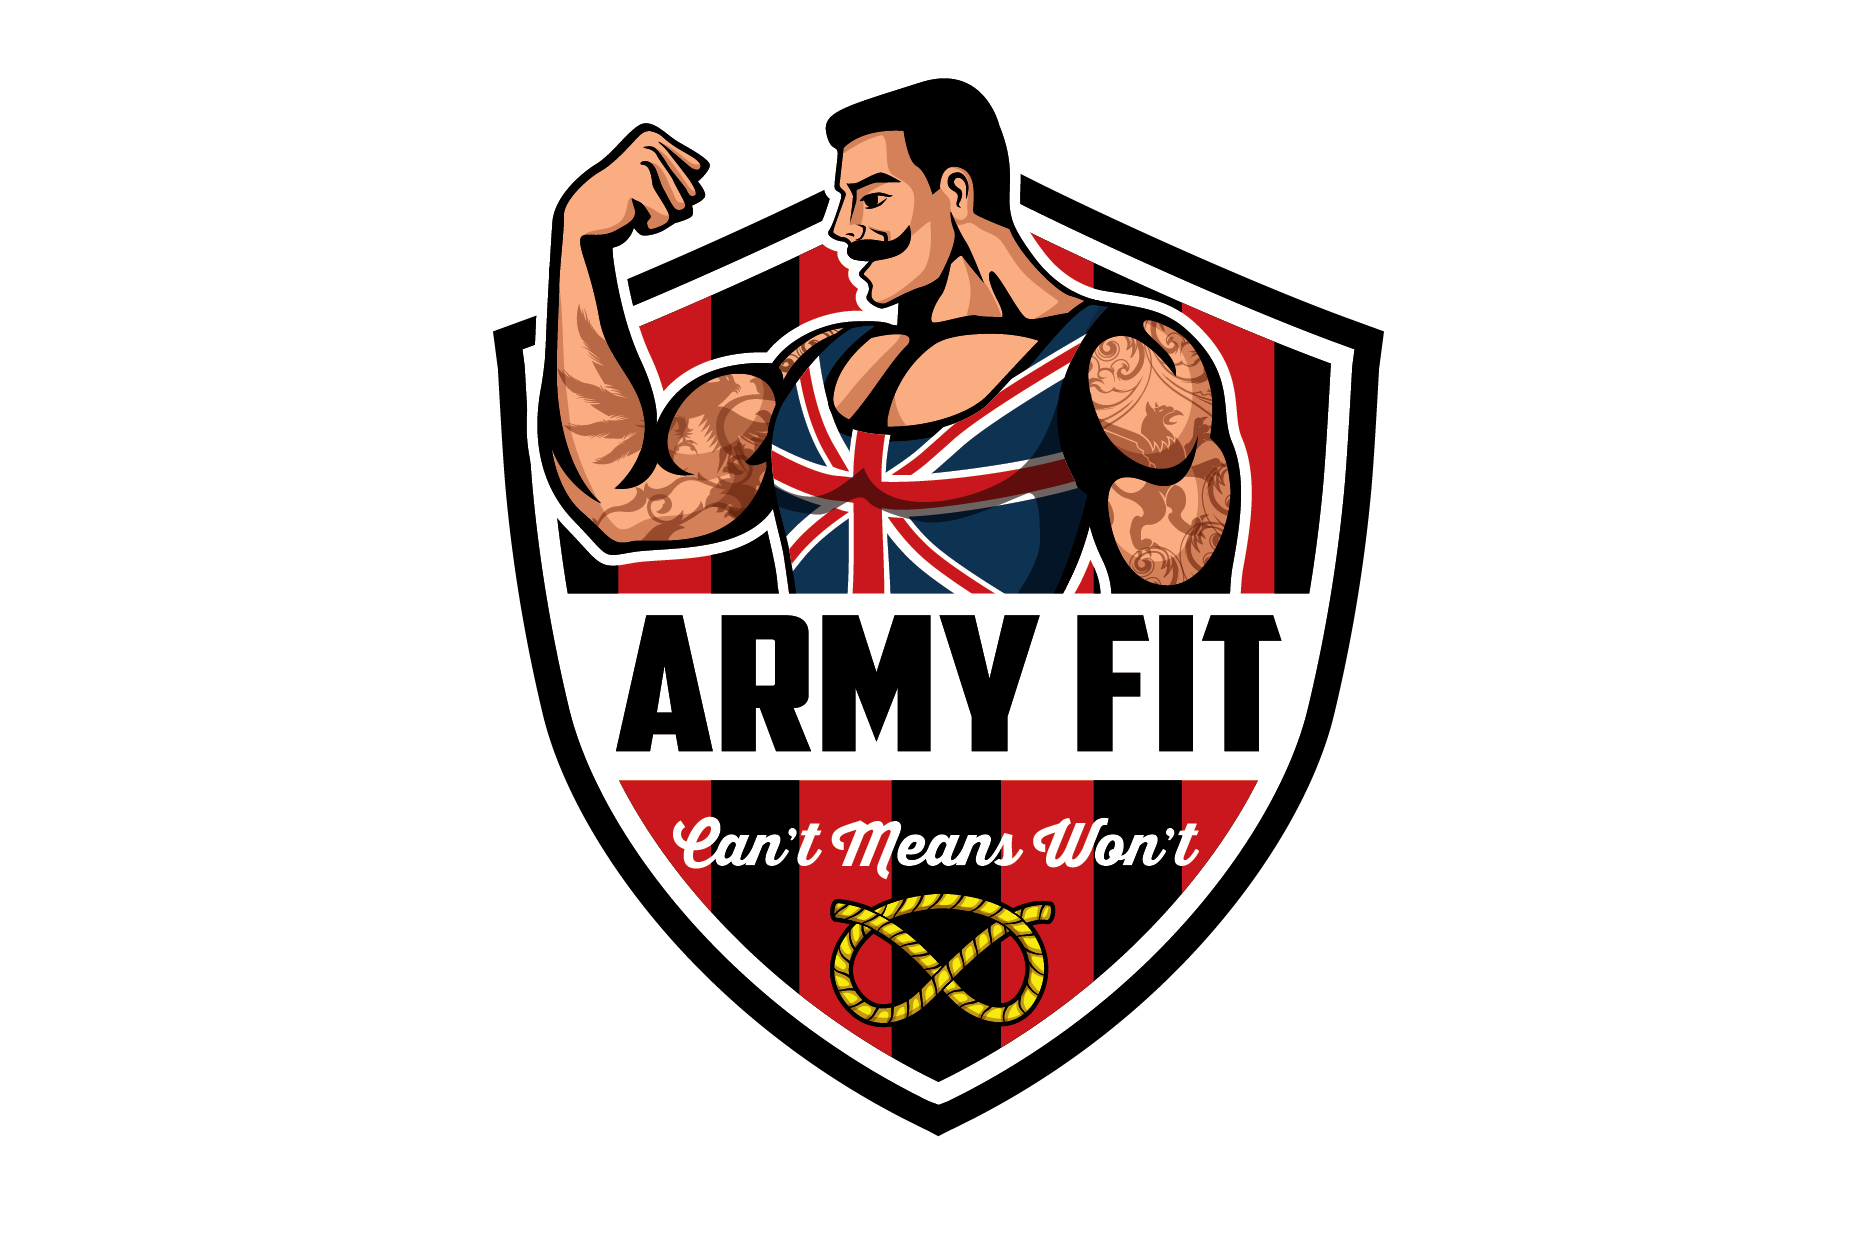 Create a fun old fashioned characature of body builder logo for Army Fit